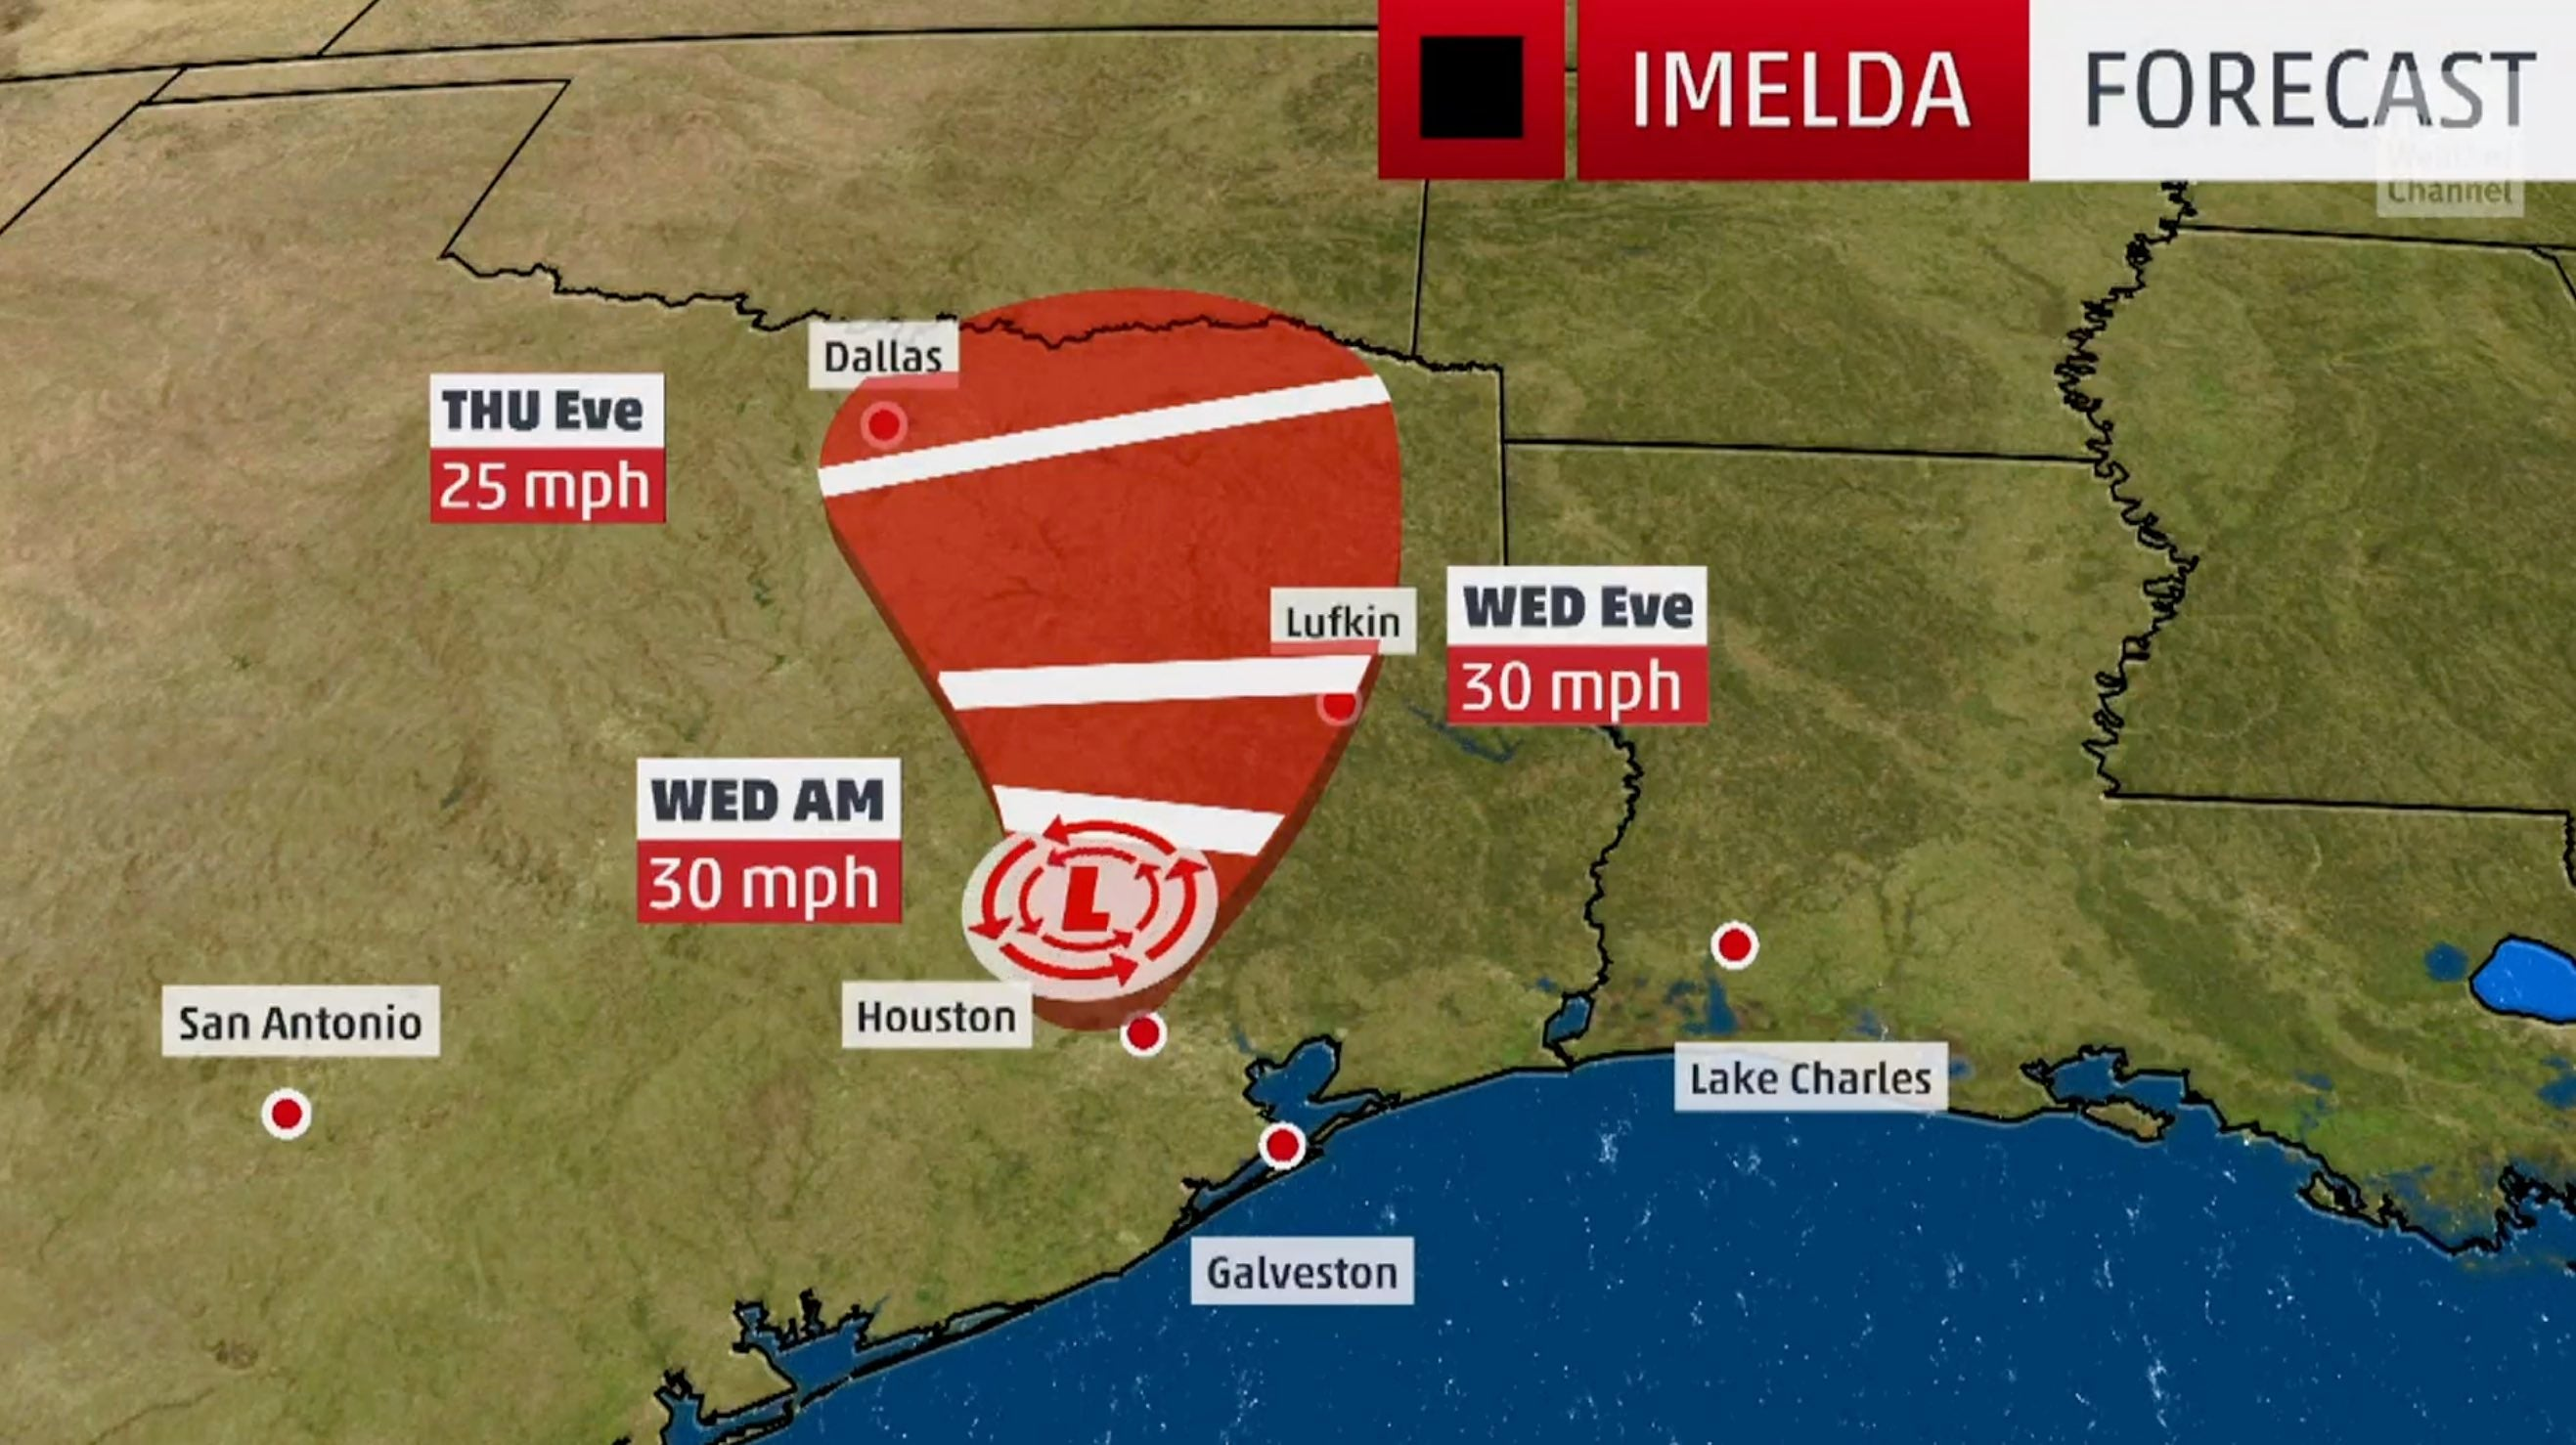 Tropical Depression Imelda is drenching the Southeast Texas coast, prompting flash flood warnings.